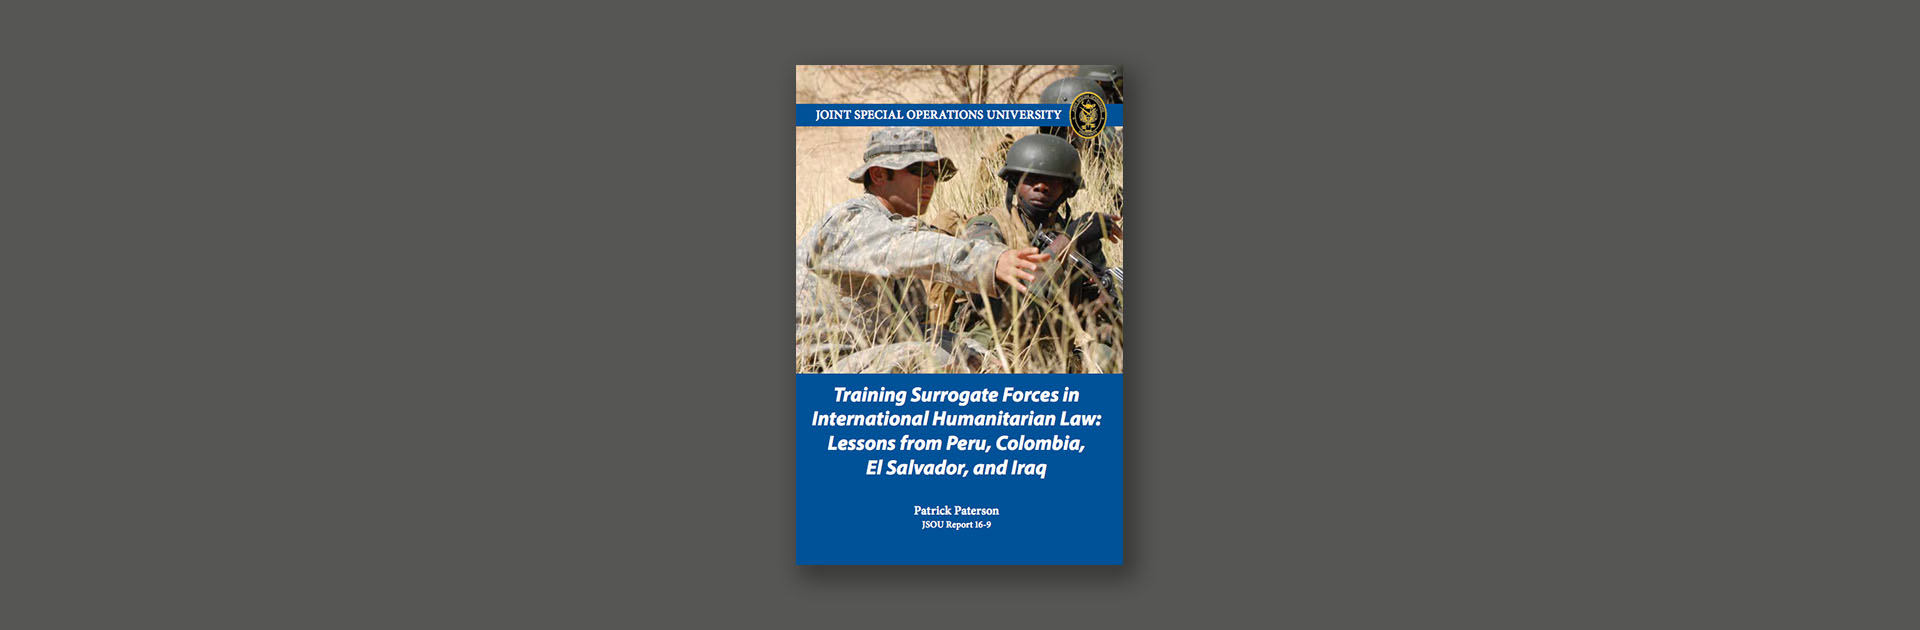 Training Surrogate Forces in International Humanitarian Law: Lessons from Peru, Colombia, El Salvador, and Iraq